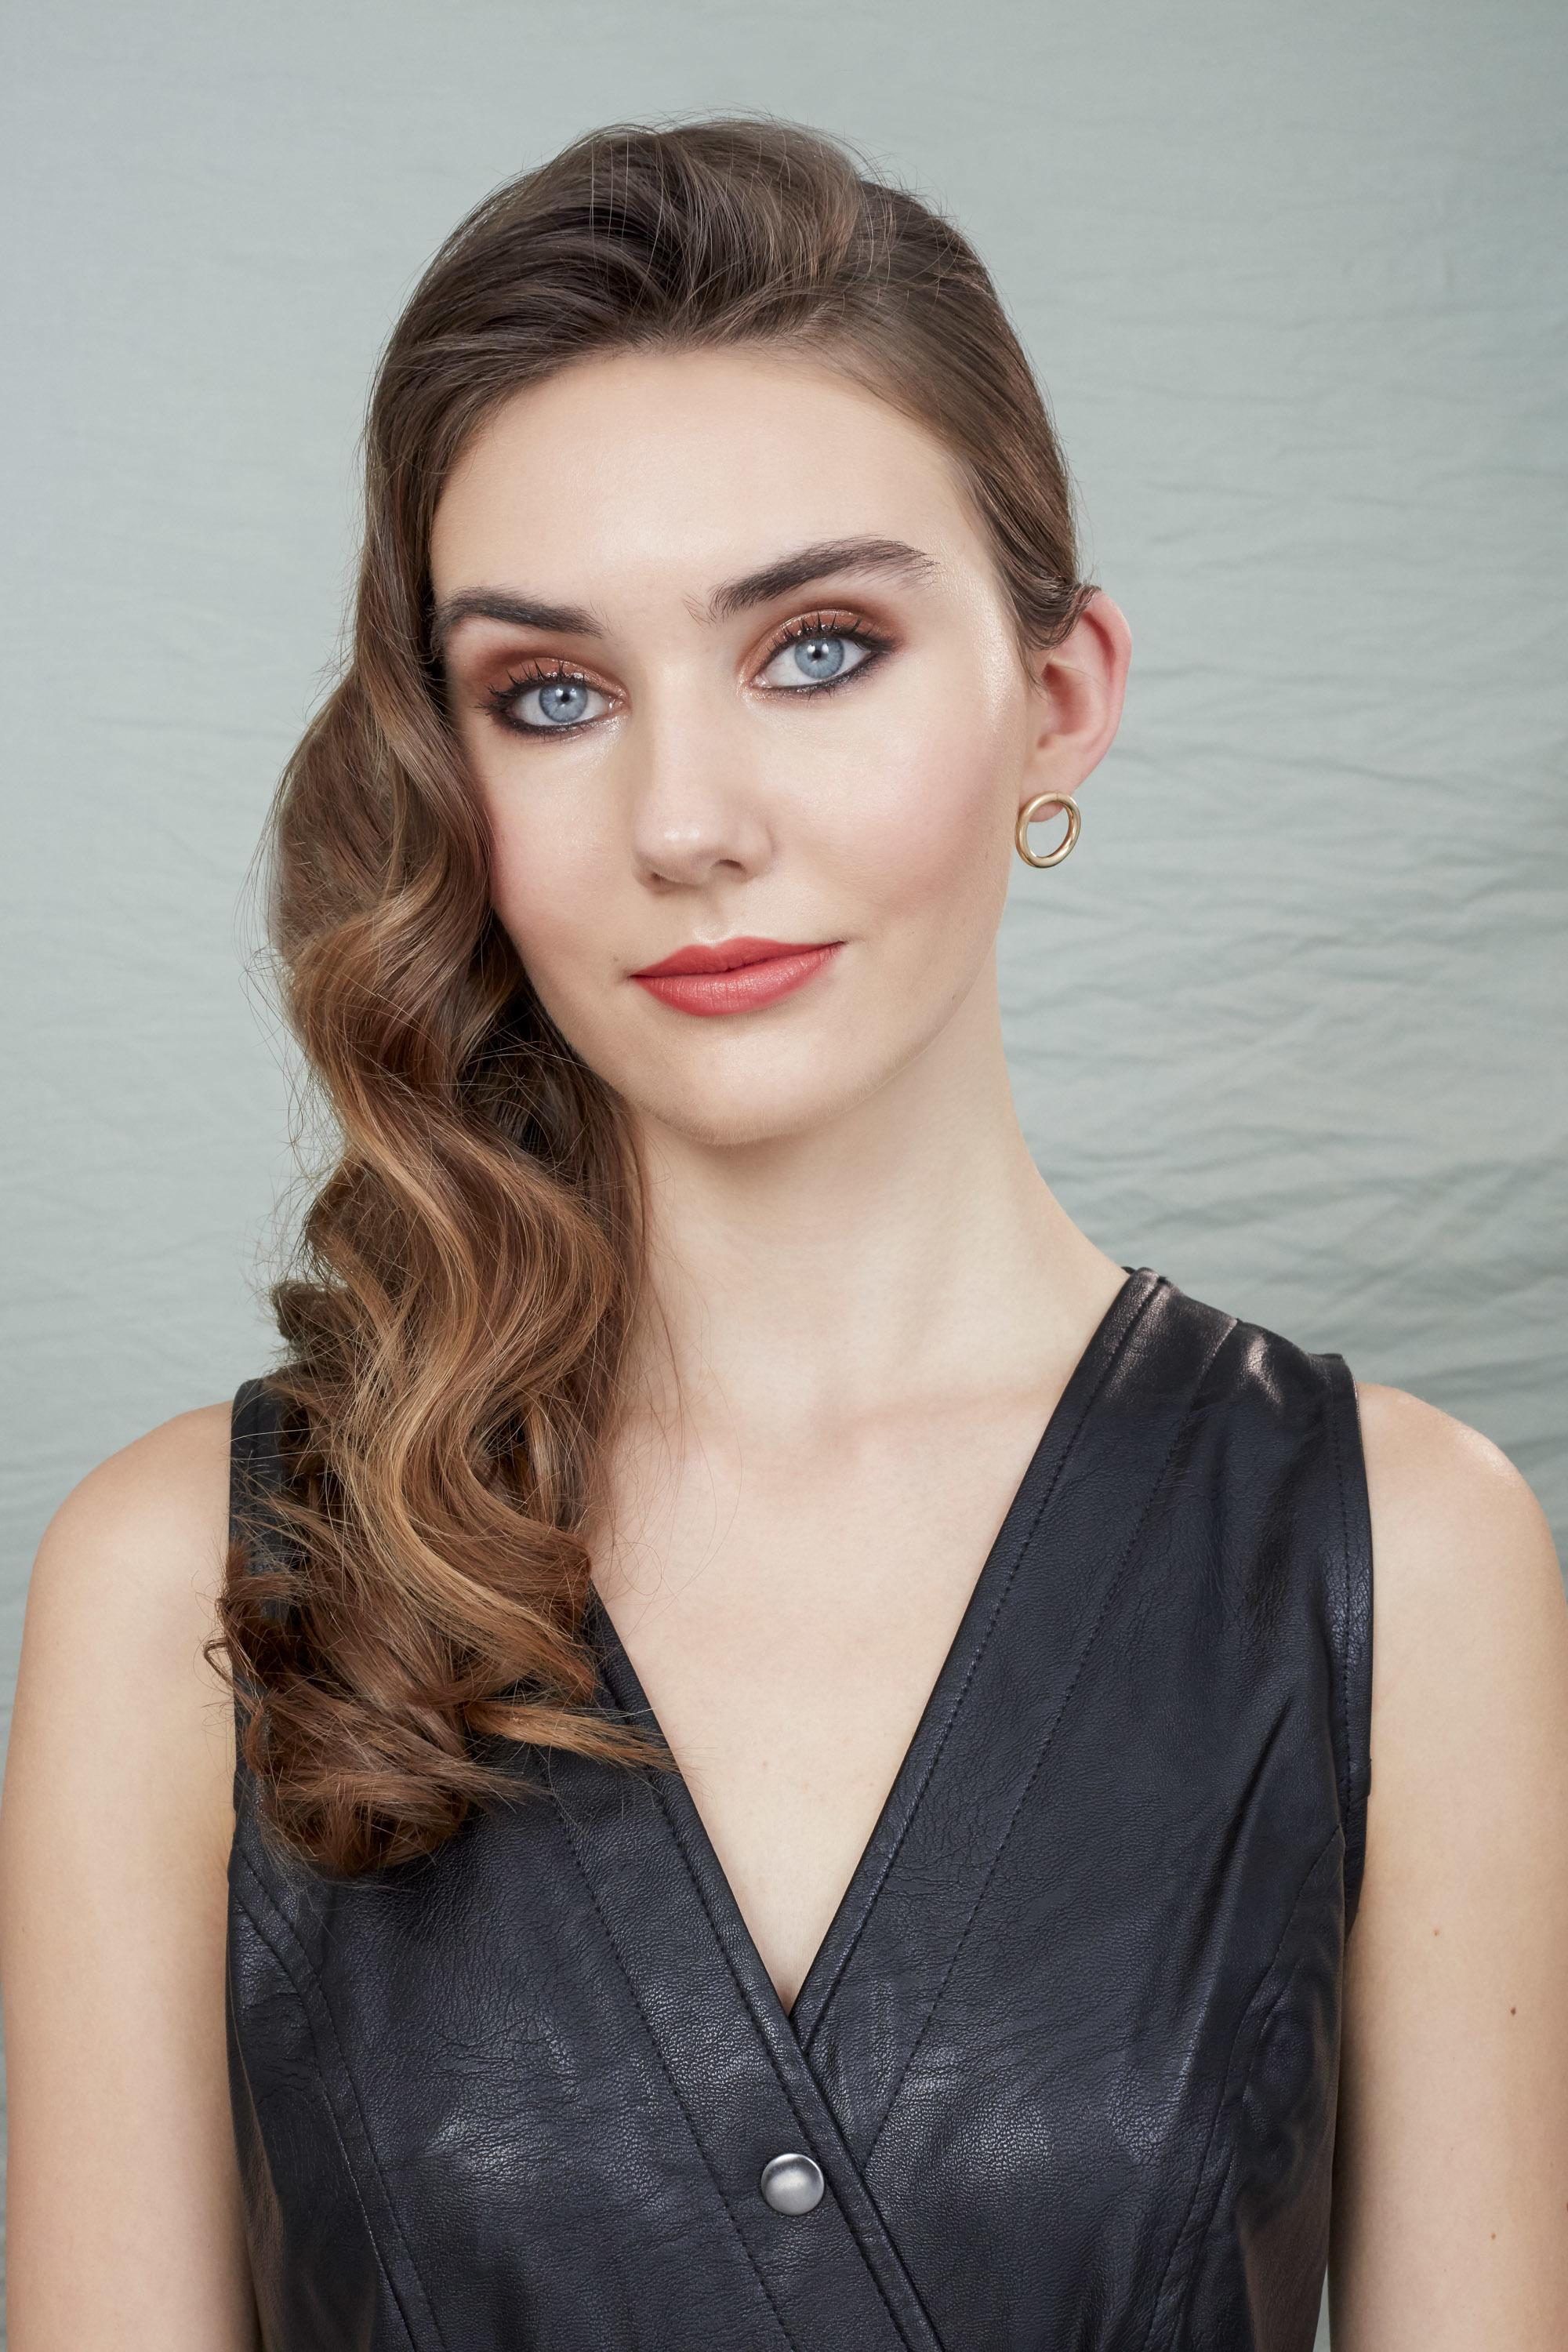 Party hair tips: Woman with long, wavy chestnut brown hair styled into Hollywood curls wearing black leather dress and posing in a studio setting